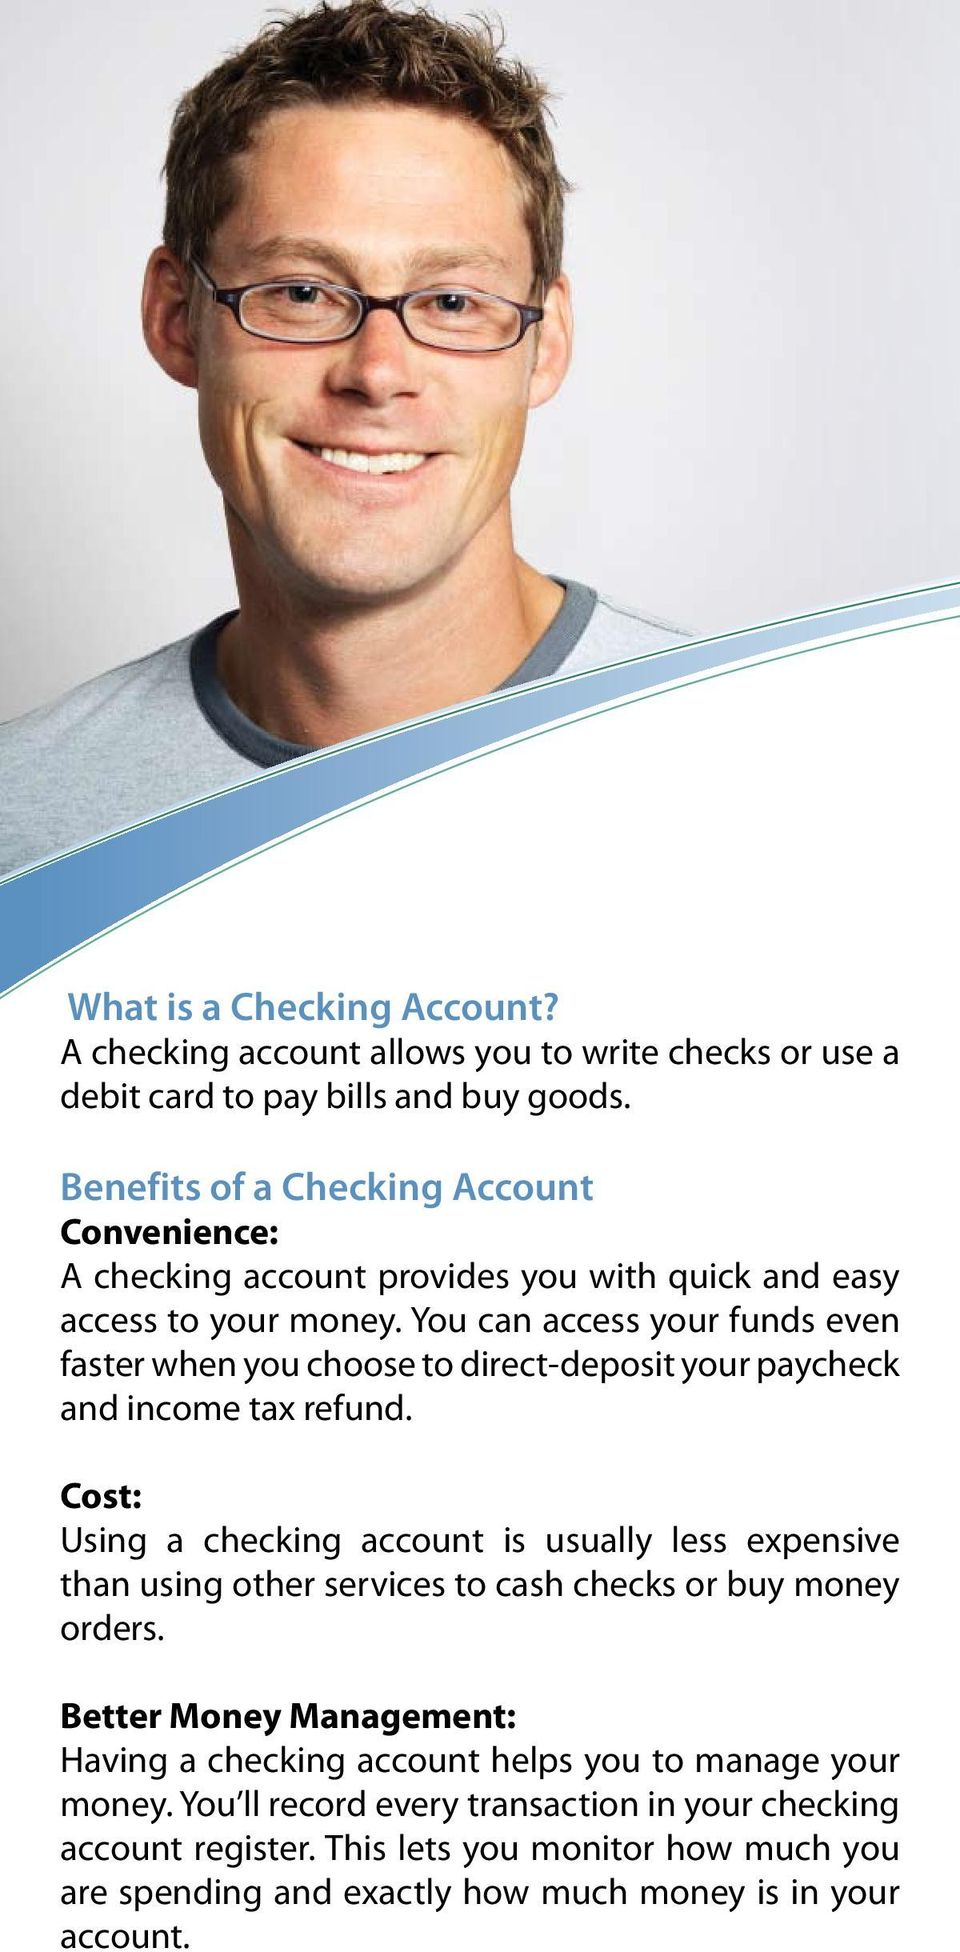 You can access your funds even faster when you choose to direct-deposit your paycheck and income tax refund.